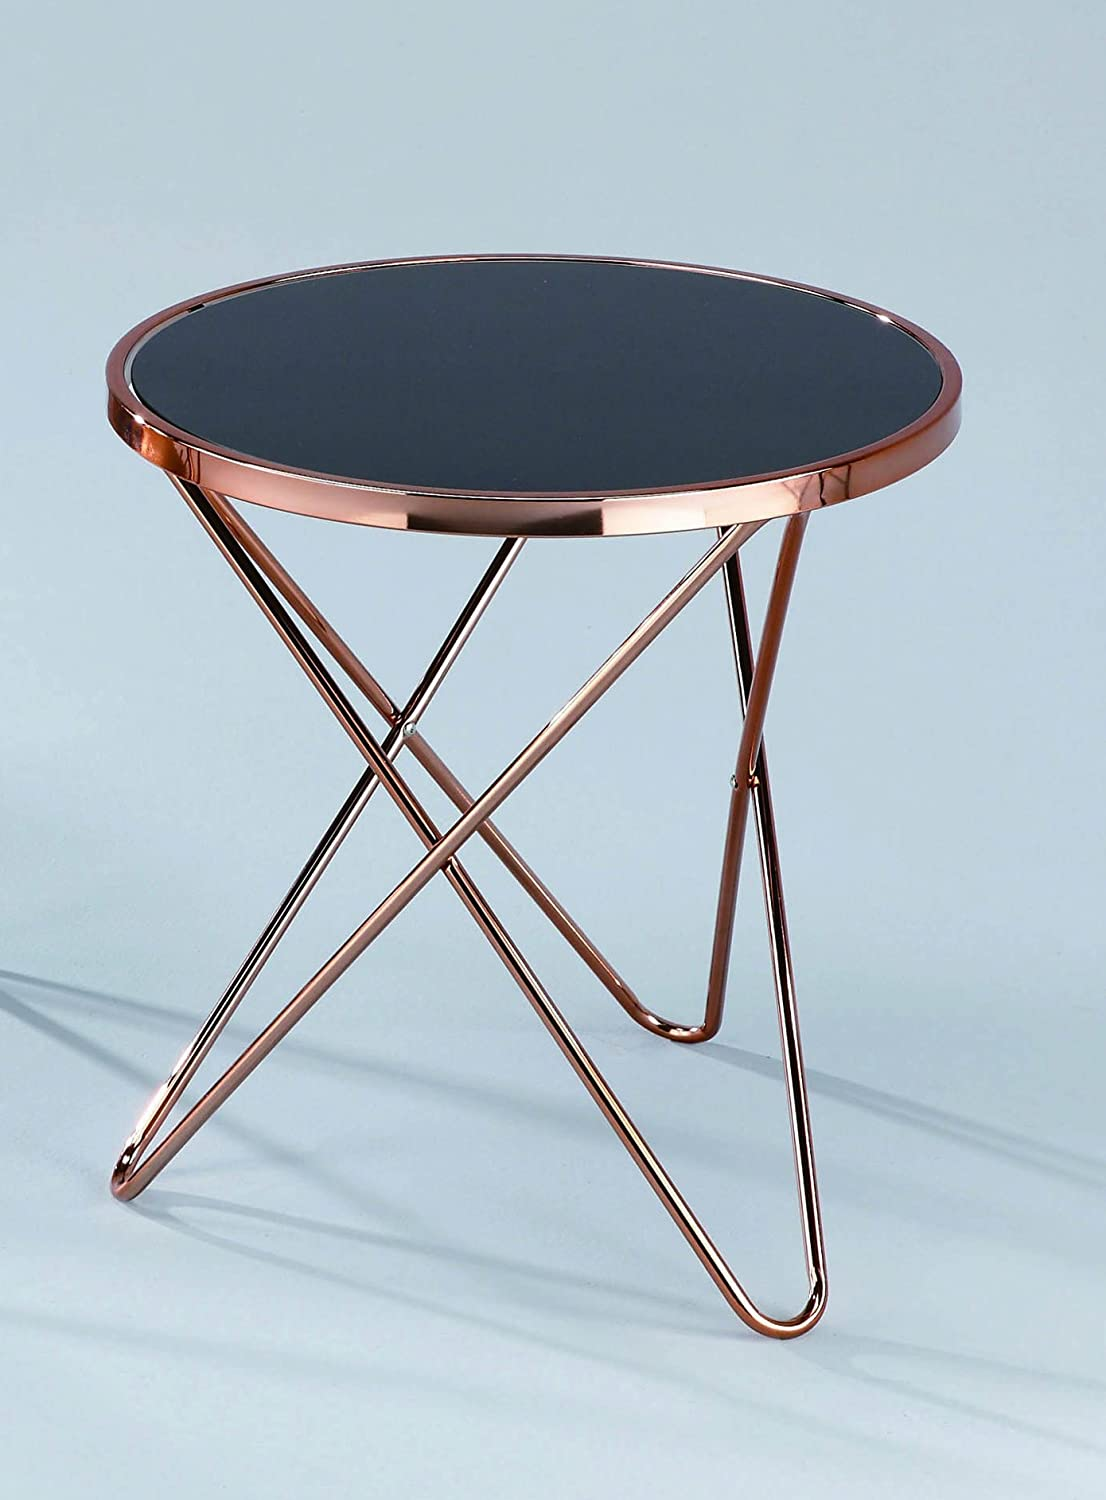 Aspect porto round sidecoffeeendlamp table metal copperblack aspect porto round sidecoffeeendlamp table metal copperblack aloadofball Gallery